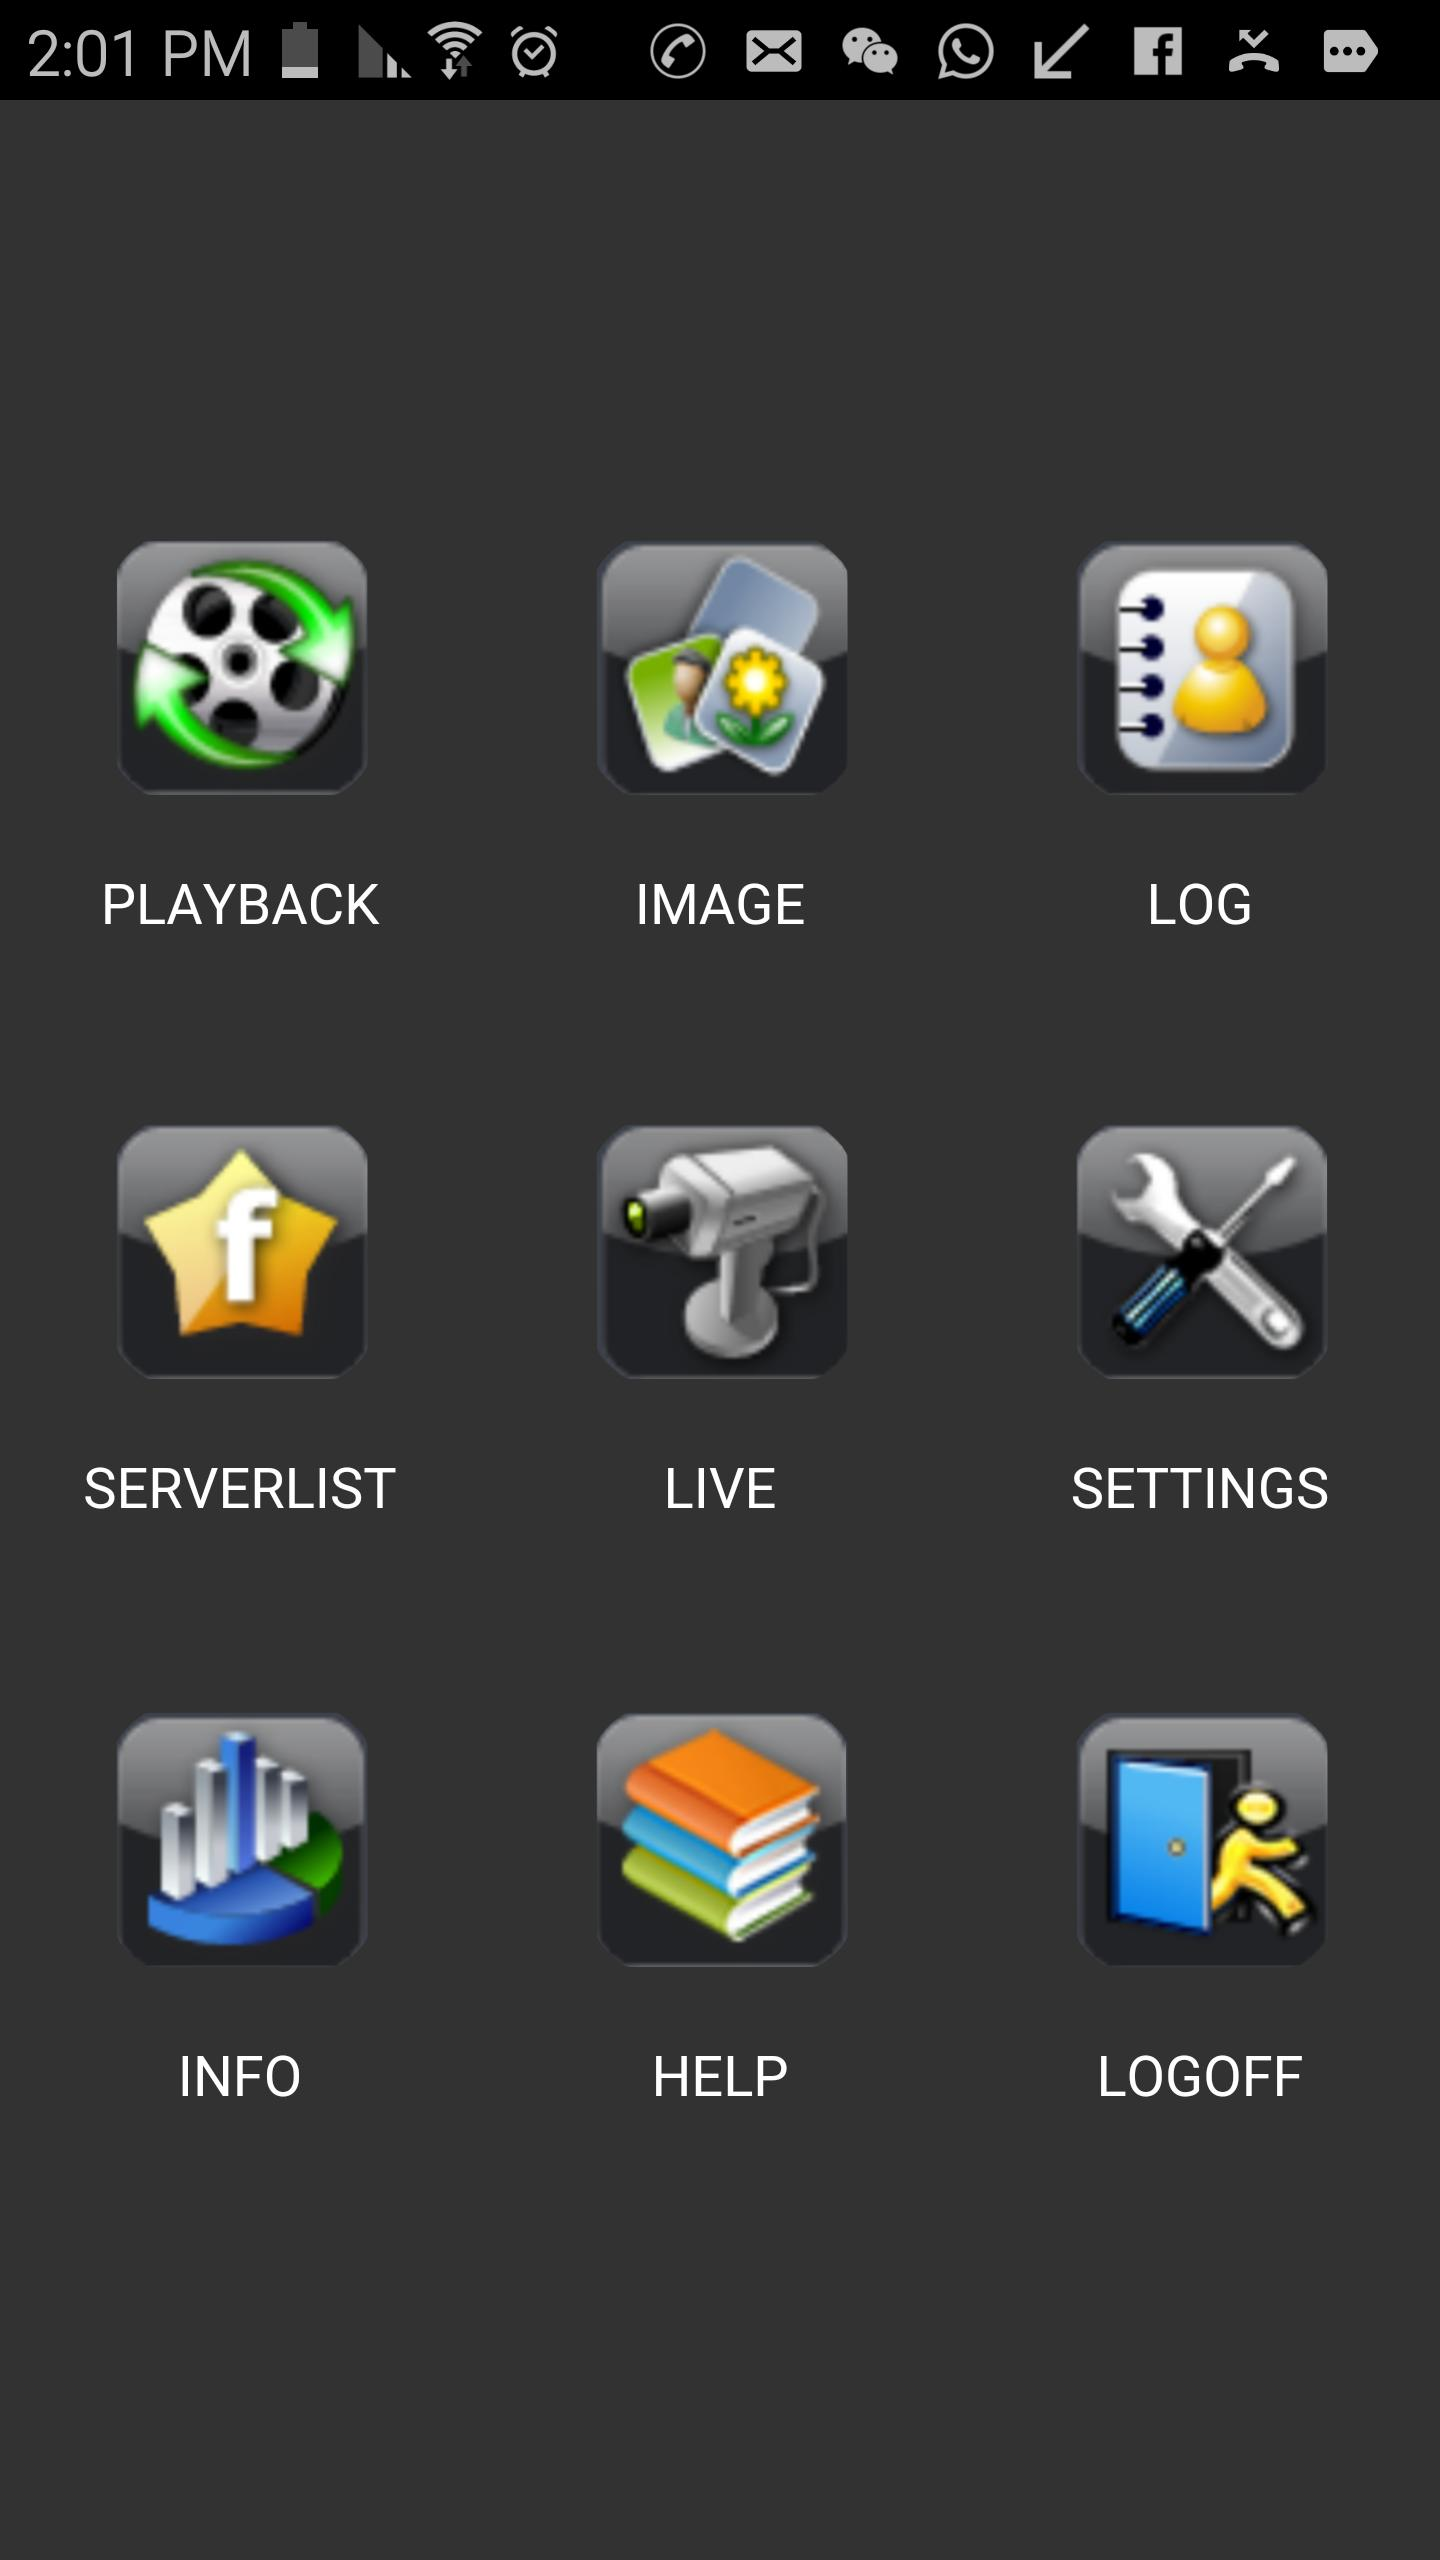 ESEENET Pro ErocamPro for Android - APK Download